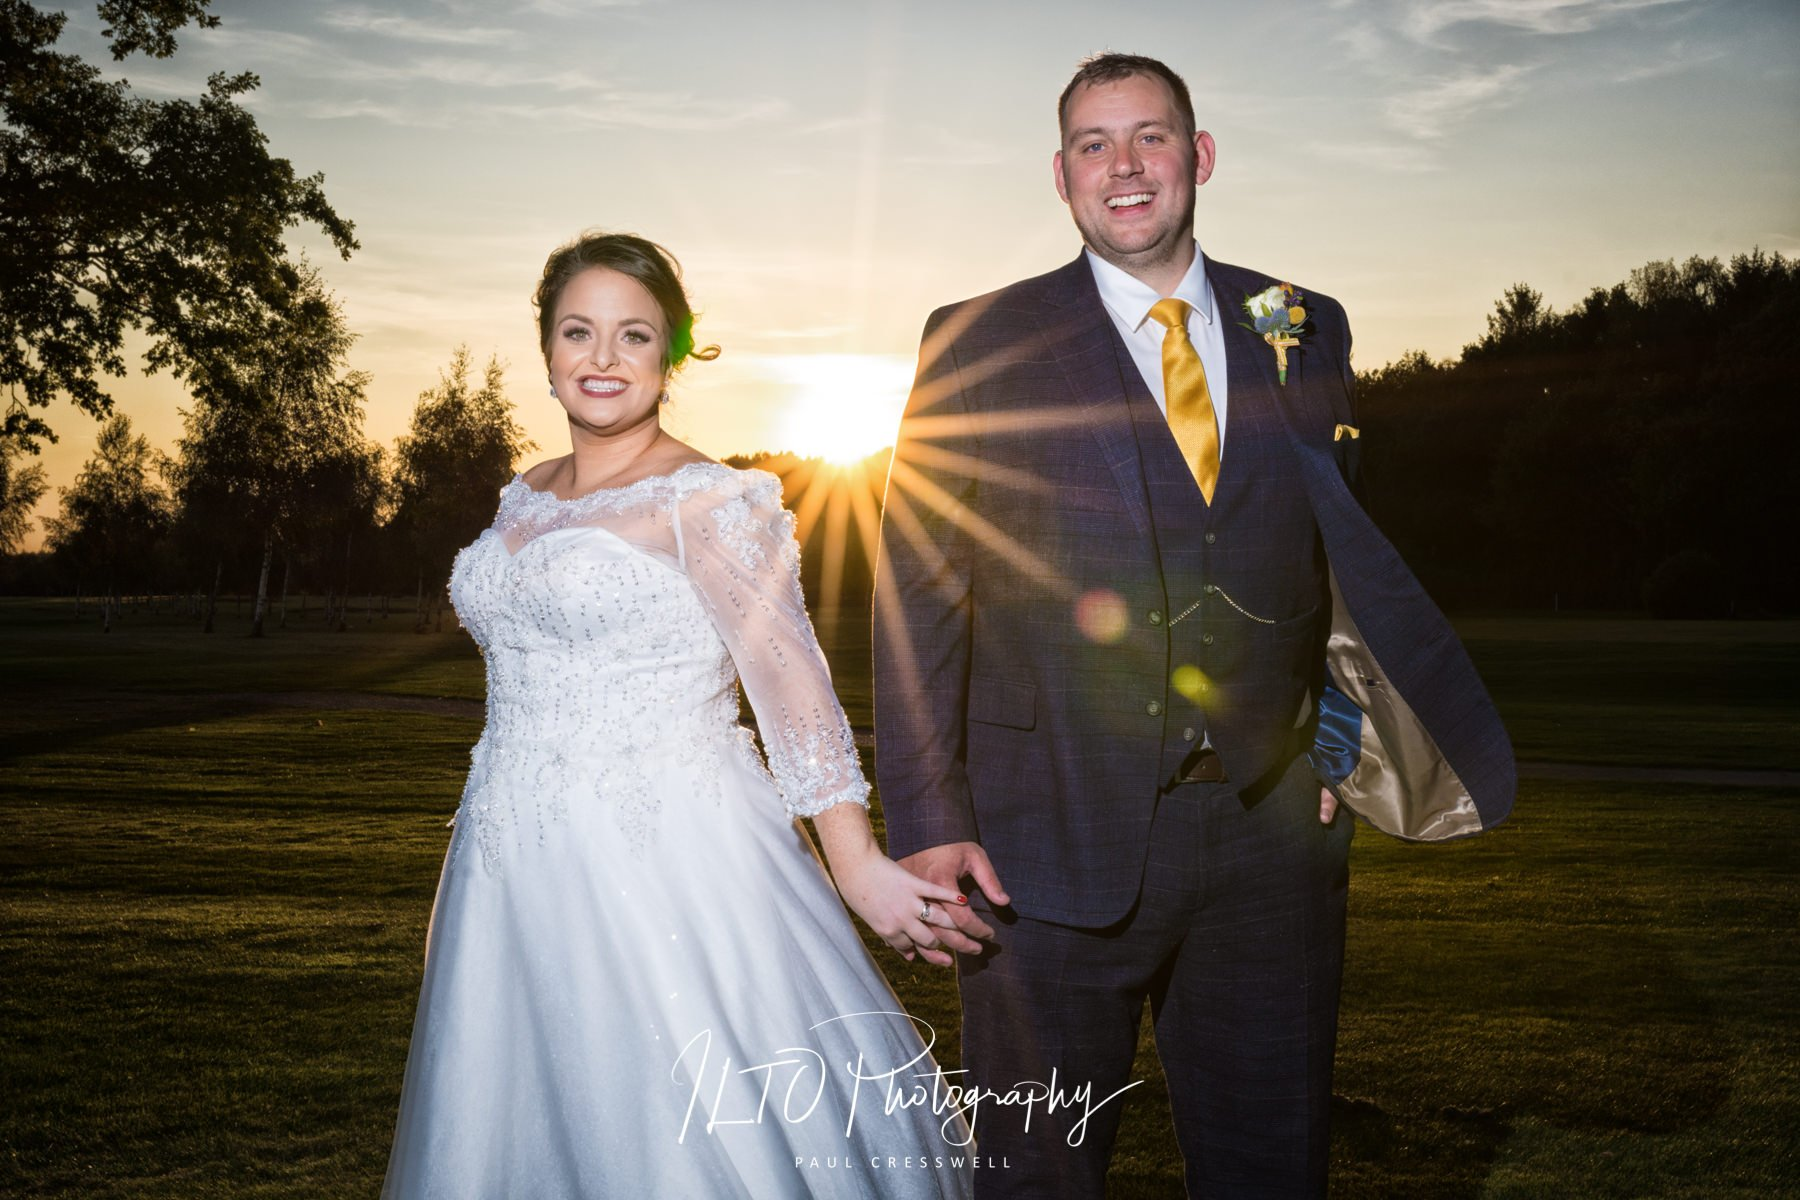 Sunset, Sandurn Hall wedding, wedding portfolio, west yorkshire wedding photographer